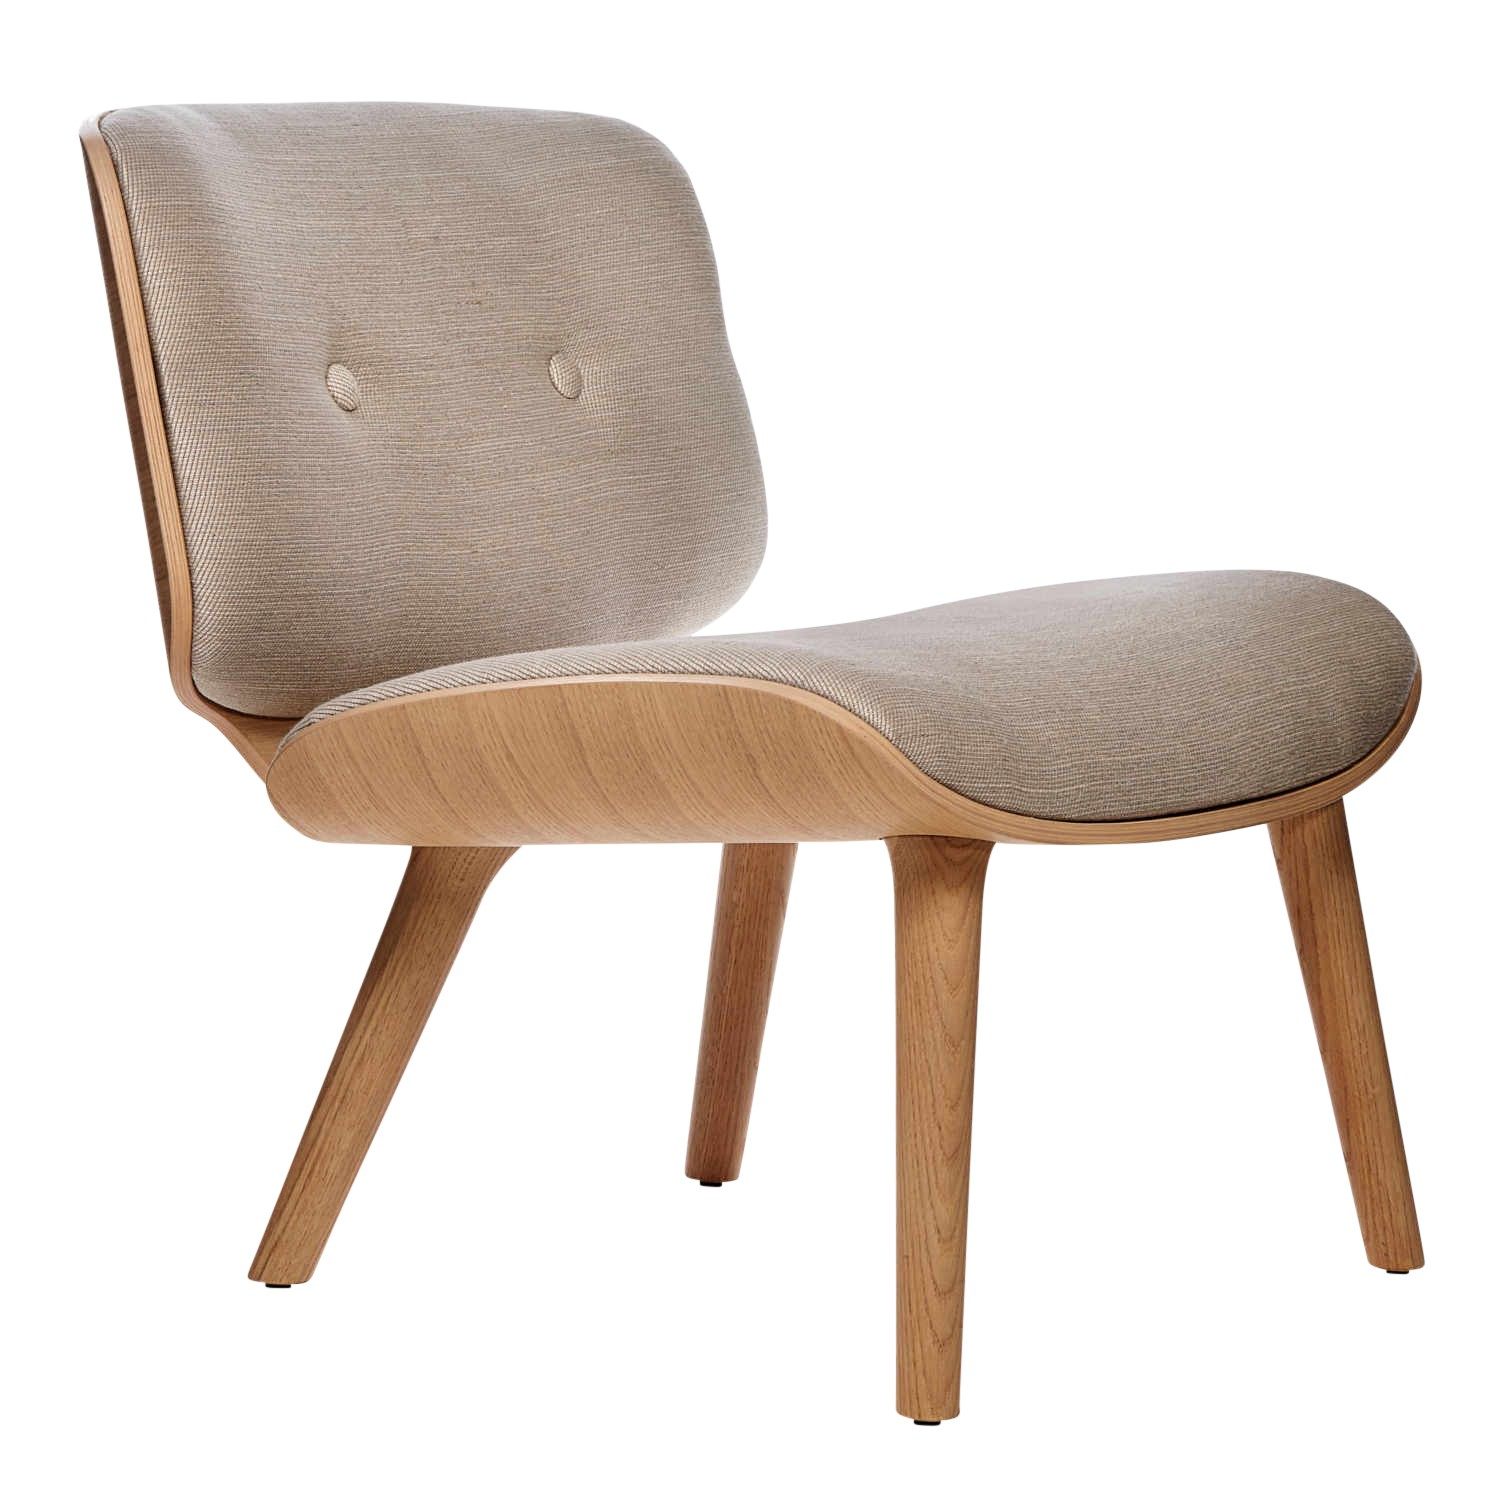 Chair Sessel Nut Lounge Chair Sessel